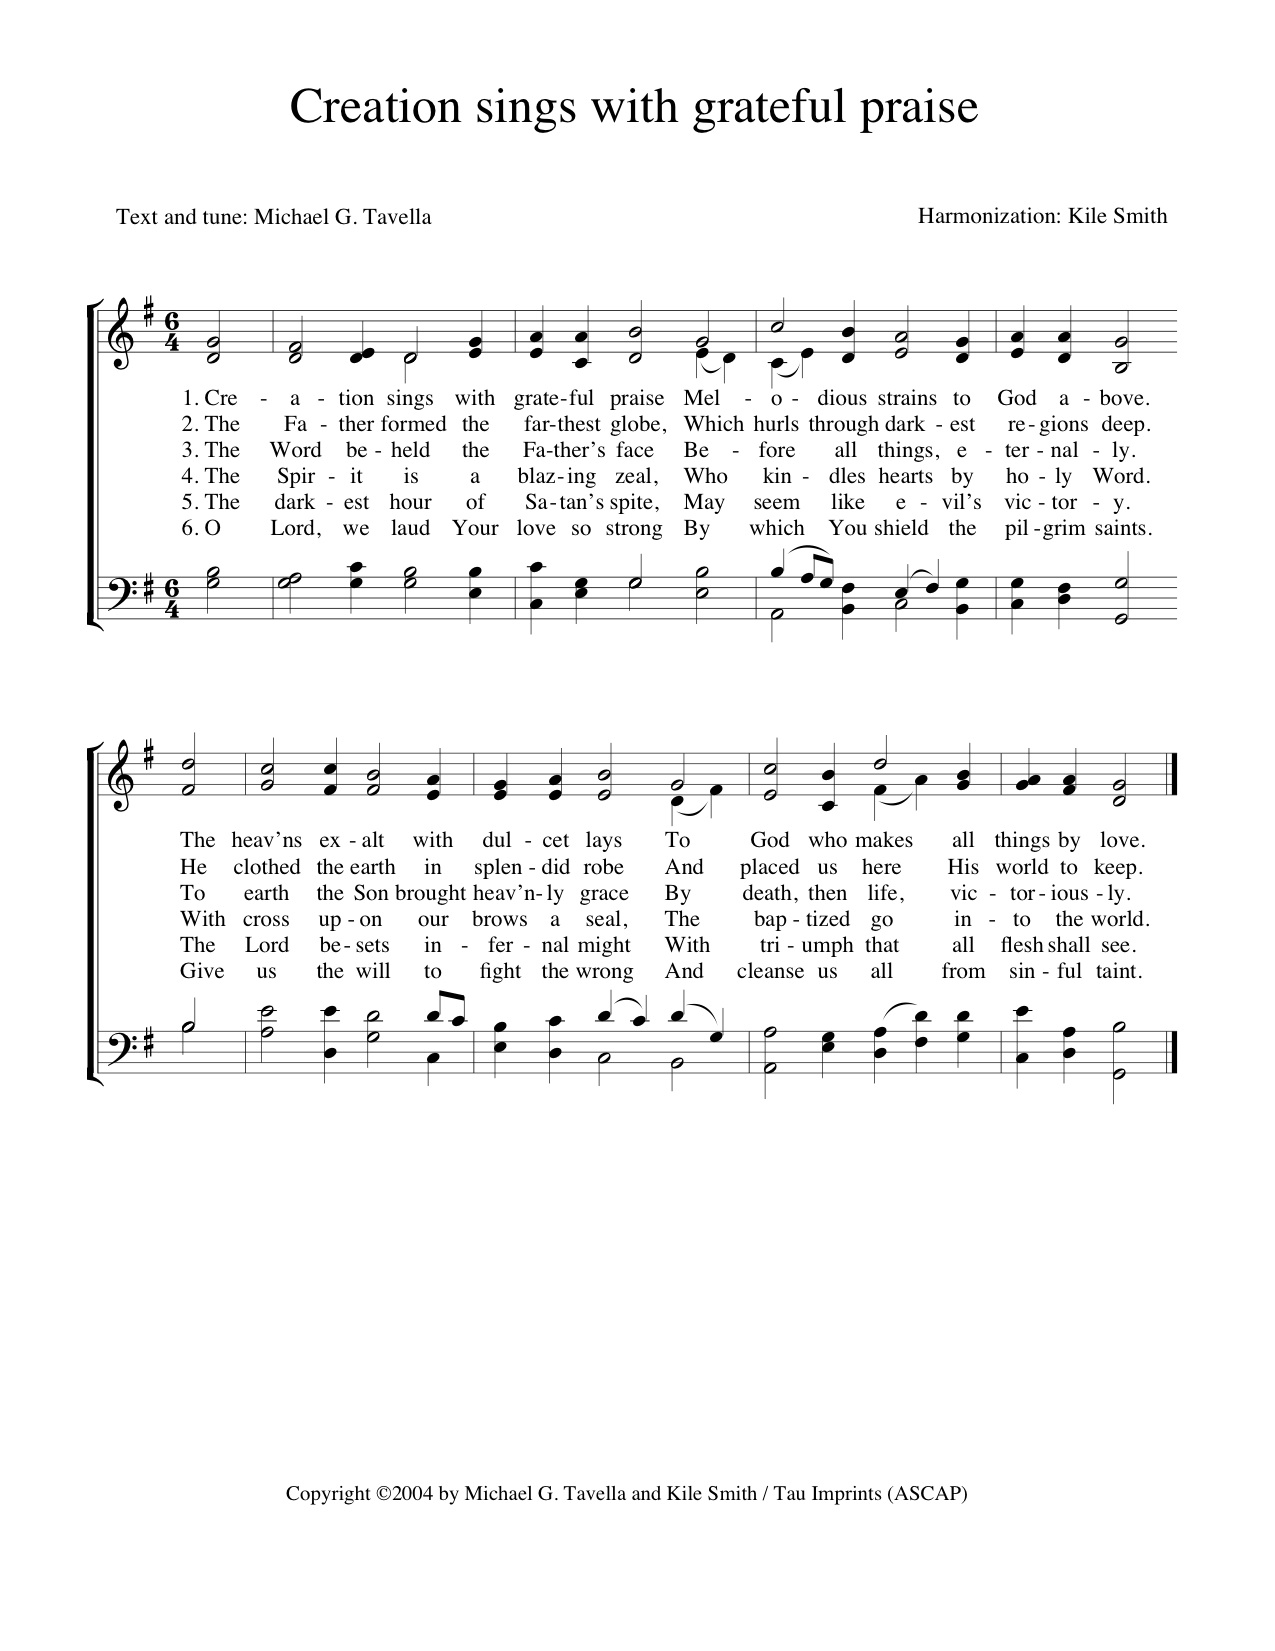 Choral and vocal music kile smith composer text by michael g tavella harmonization and voicing only tune by michael g tavella hexwebz Choice Image